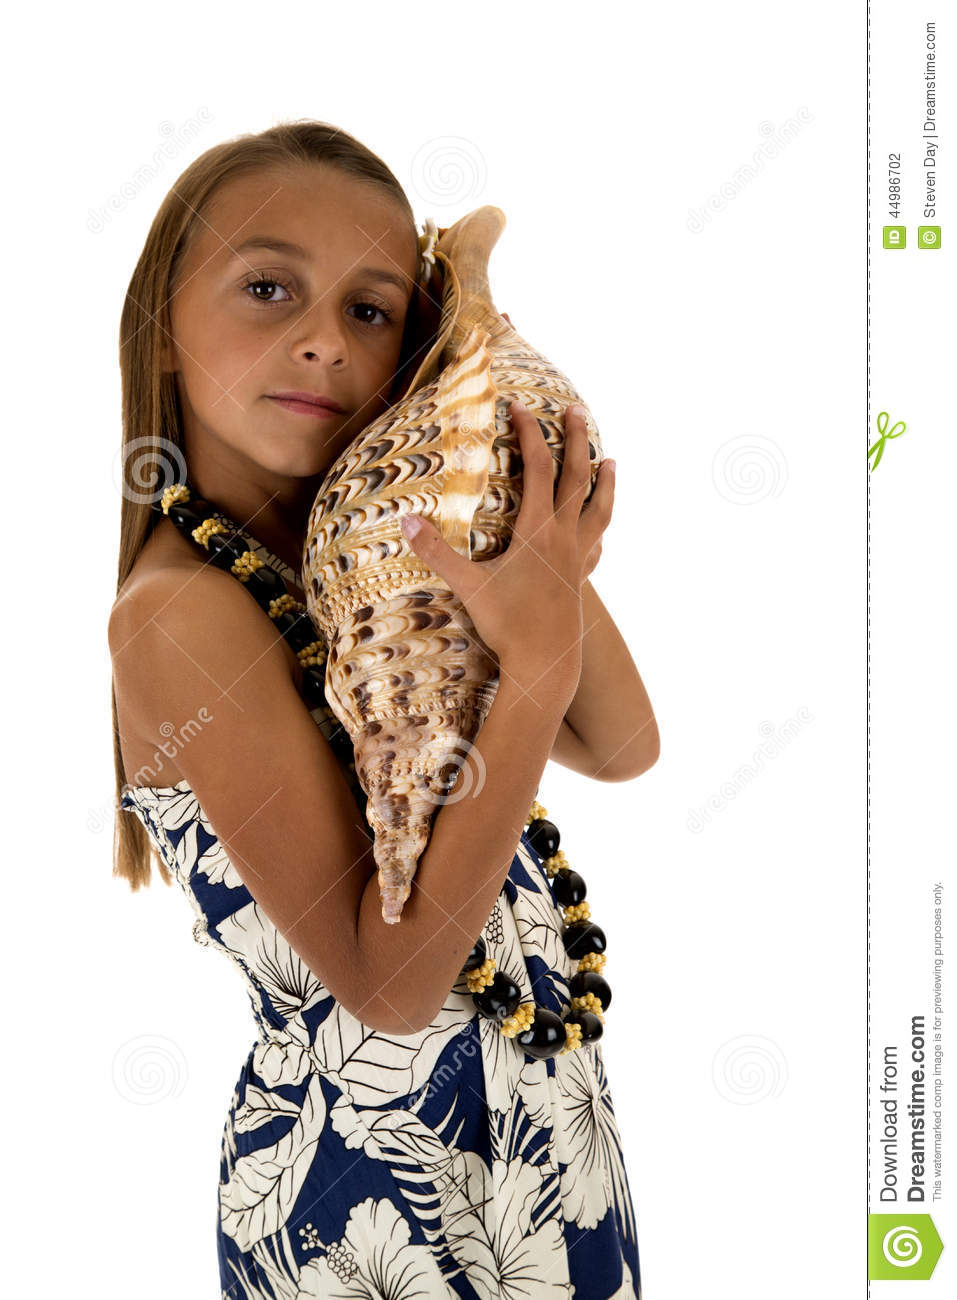 Cute girl wearing a tropical dress and holding a large seashell